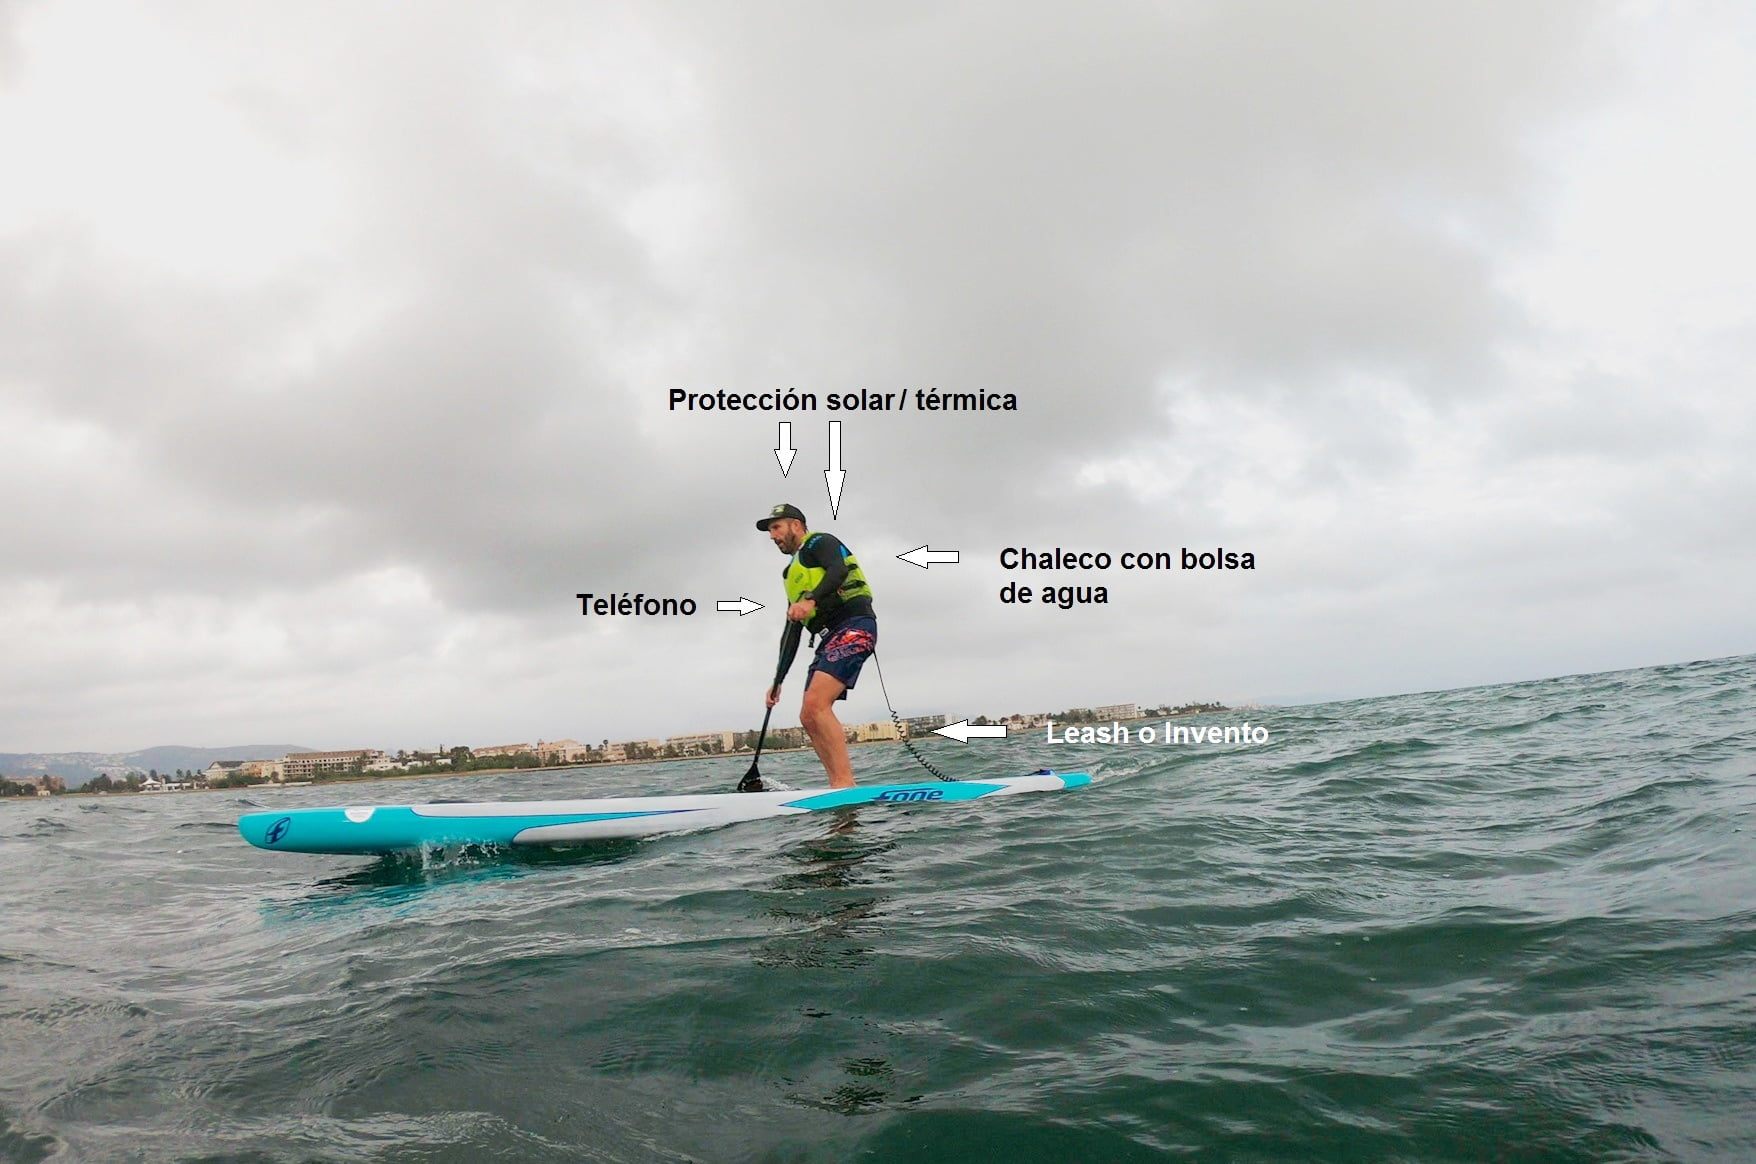 Details SUP safety measures recommended on dark days